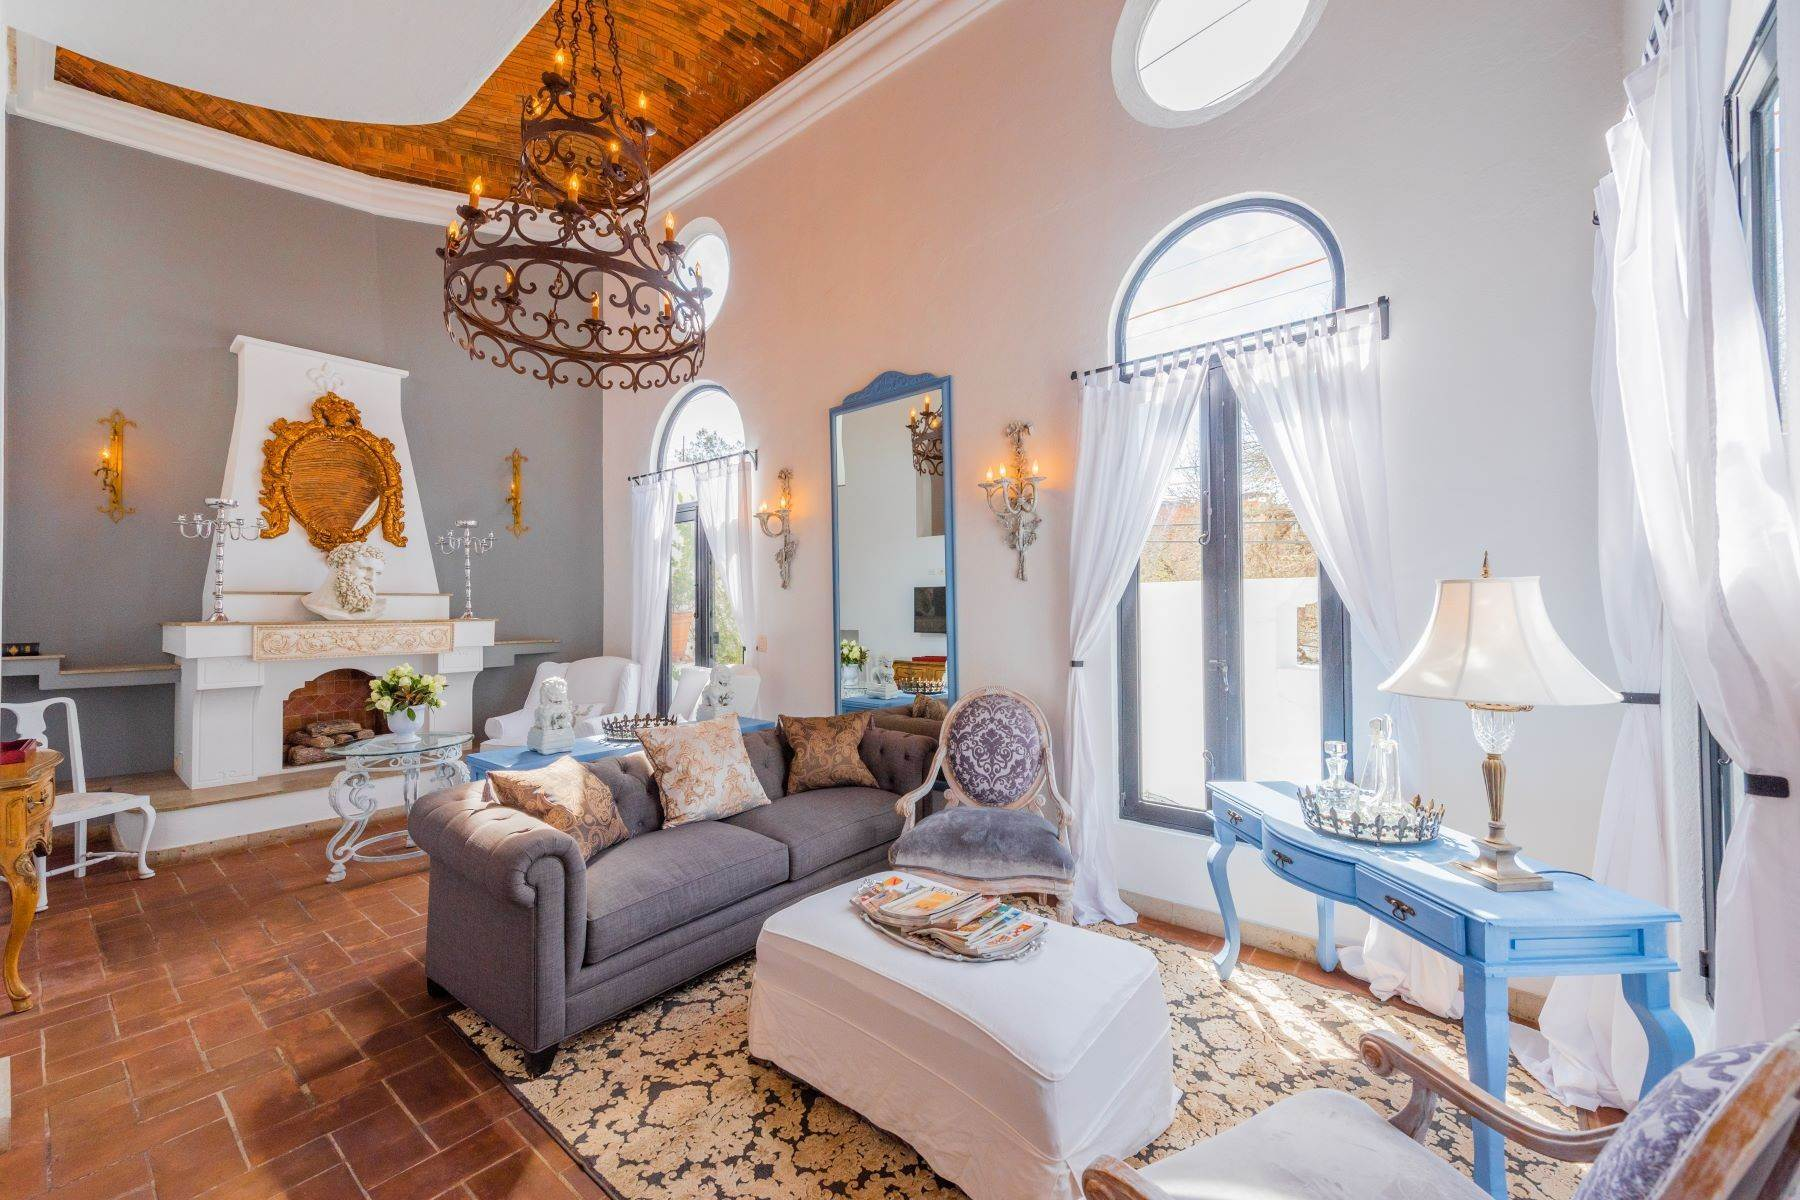 Single Family Homes for Sale at Casa Maxi San Miguel De Allende, Guanajuato Mexico